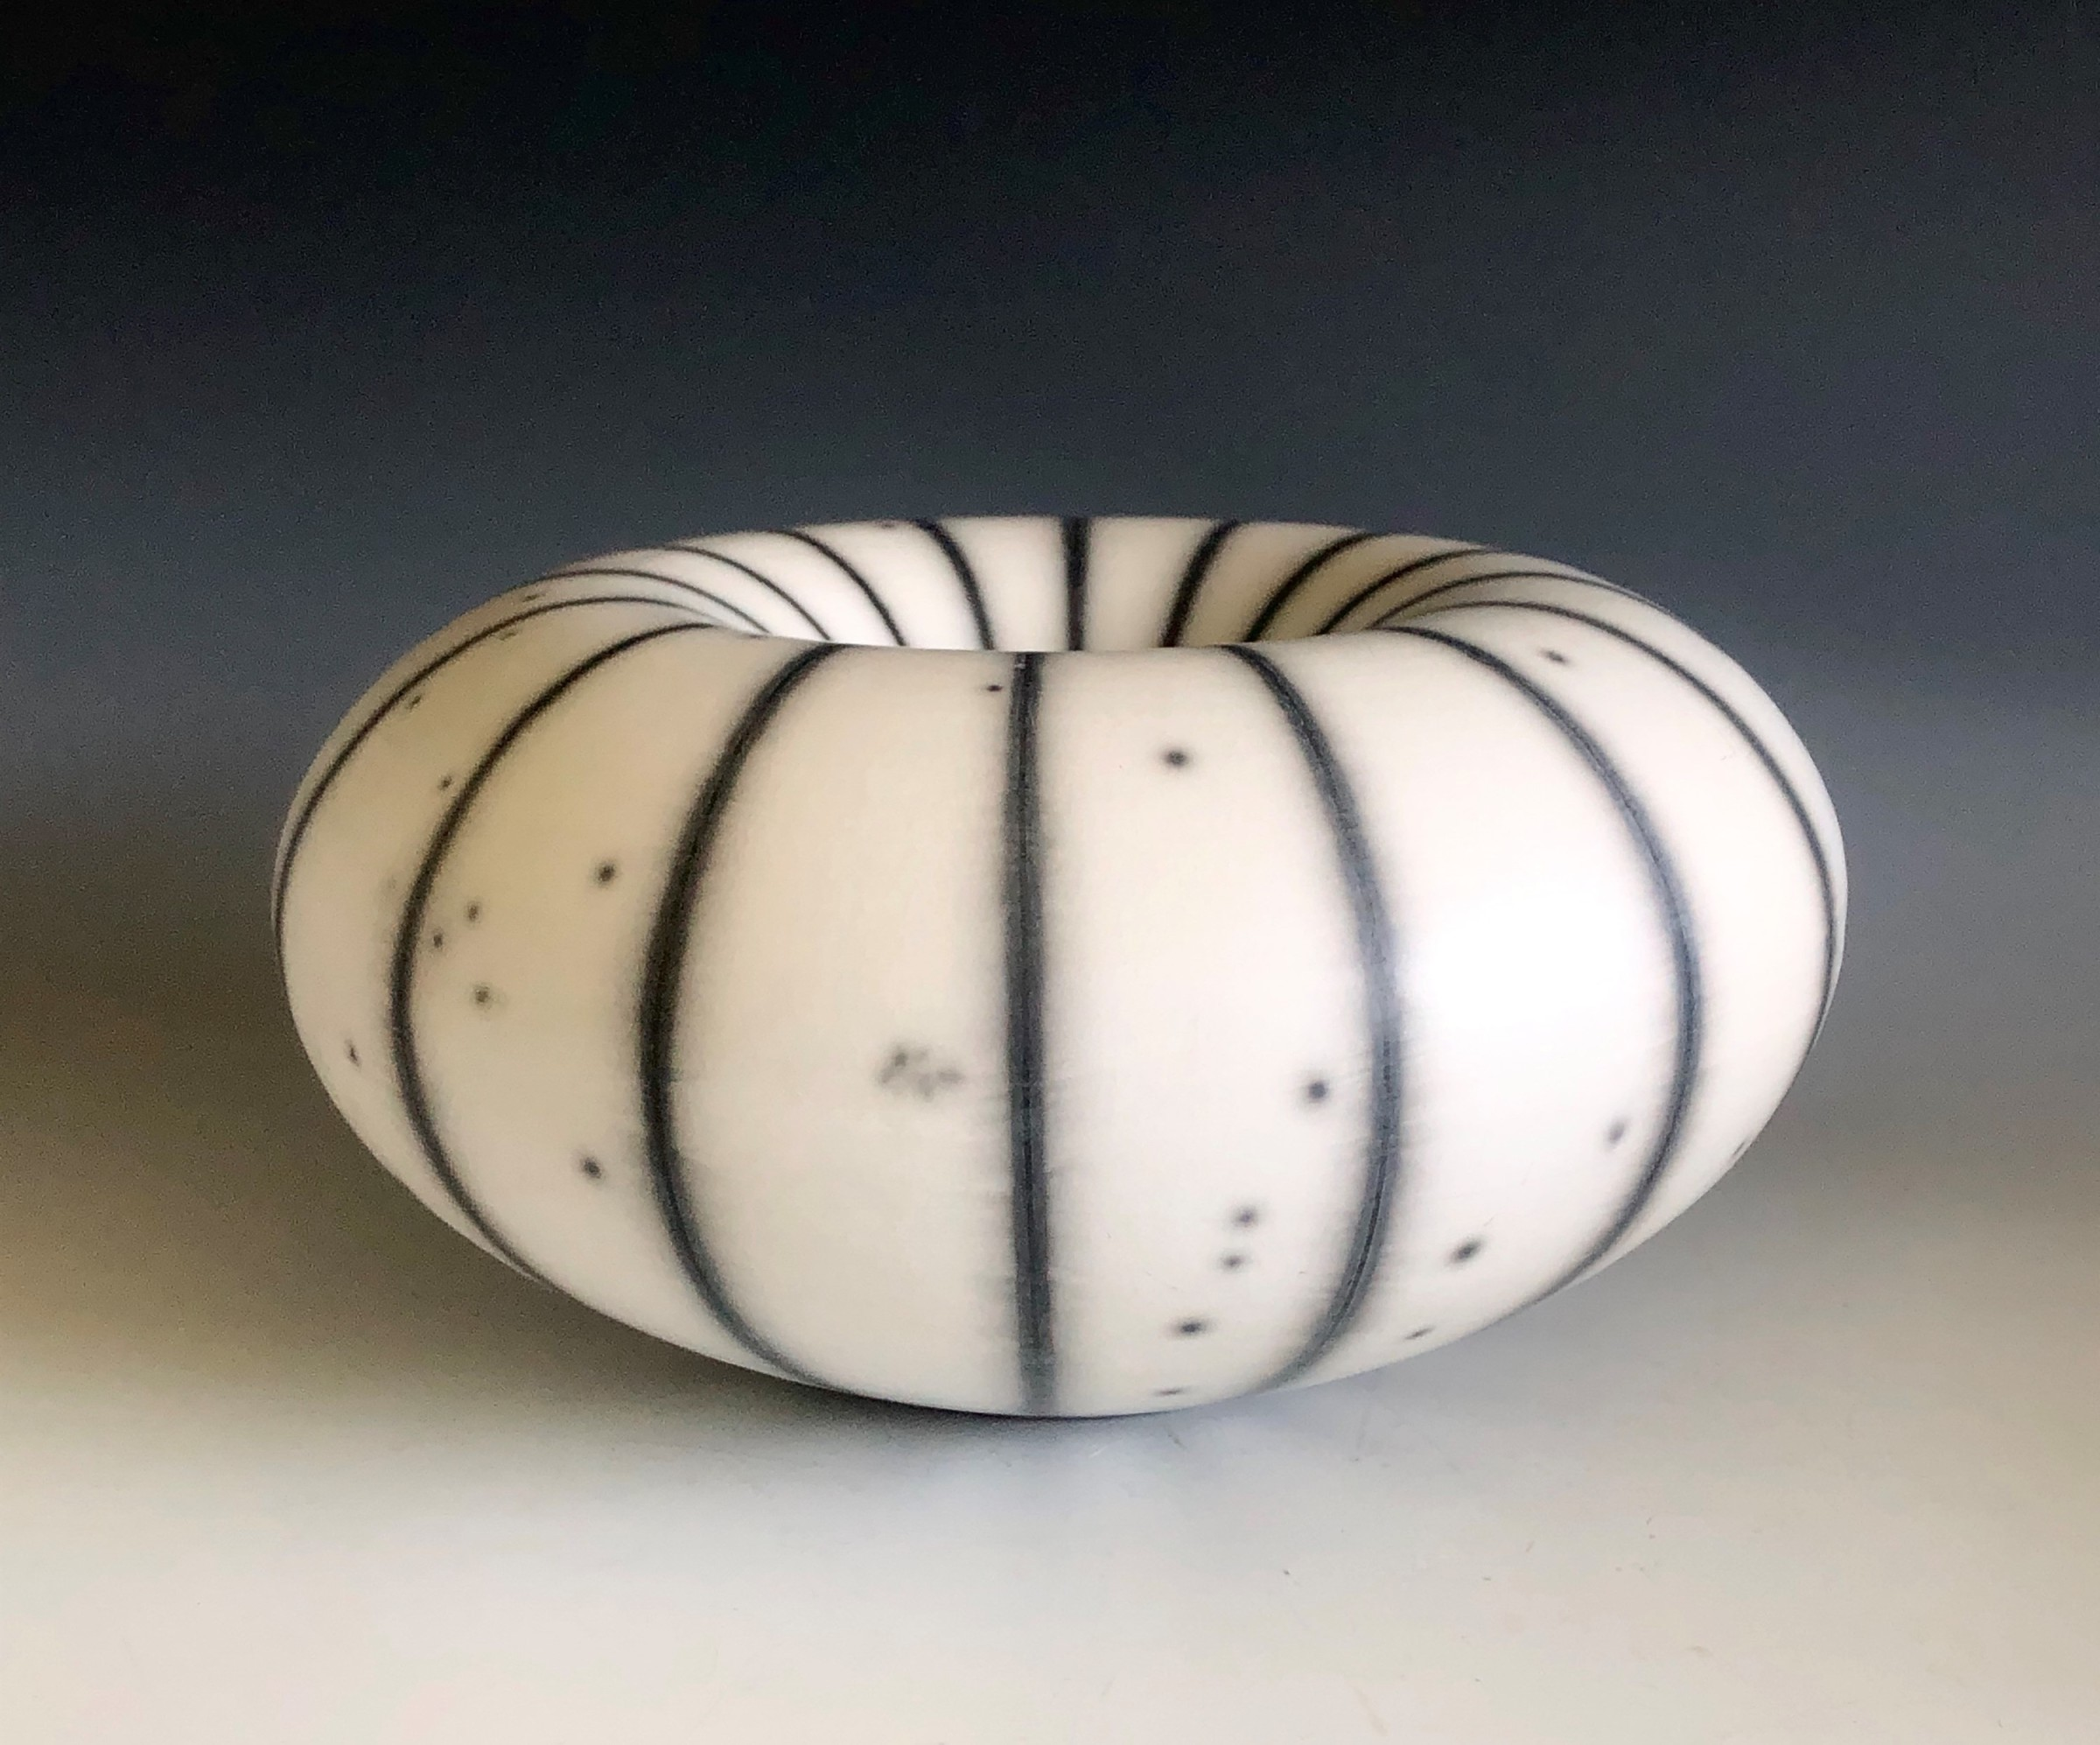 "<span class=""link fancybox-details-link""><a href=""/artists/98-tim-andrews/works/7278-tim-andrews-resist-striped-humbug-form/"">View Detail Page</a></span><div class=""artist""><strong>Tim Andrews</strong></div> b. 1960 <div class=""title""><em>Resist Striped 'Humbug' form</em></div> <div class=""signed_and_dated"">impressed monogram 'TA' and '30' anniversary marks</div> <div class=""medium"">raku-fired porcelain body and 'T' material with resist slip and glaze, burnished</div> <div class=""dimensions"">h 11 cm x d 23 cm</div><div class=""price"">£800.00</div><div class=""copyright_line"">Copyright The Artist</div>"